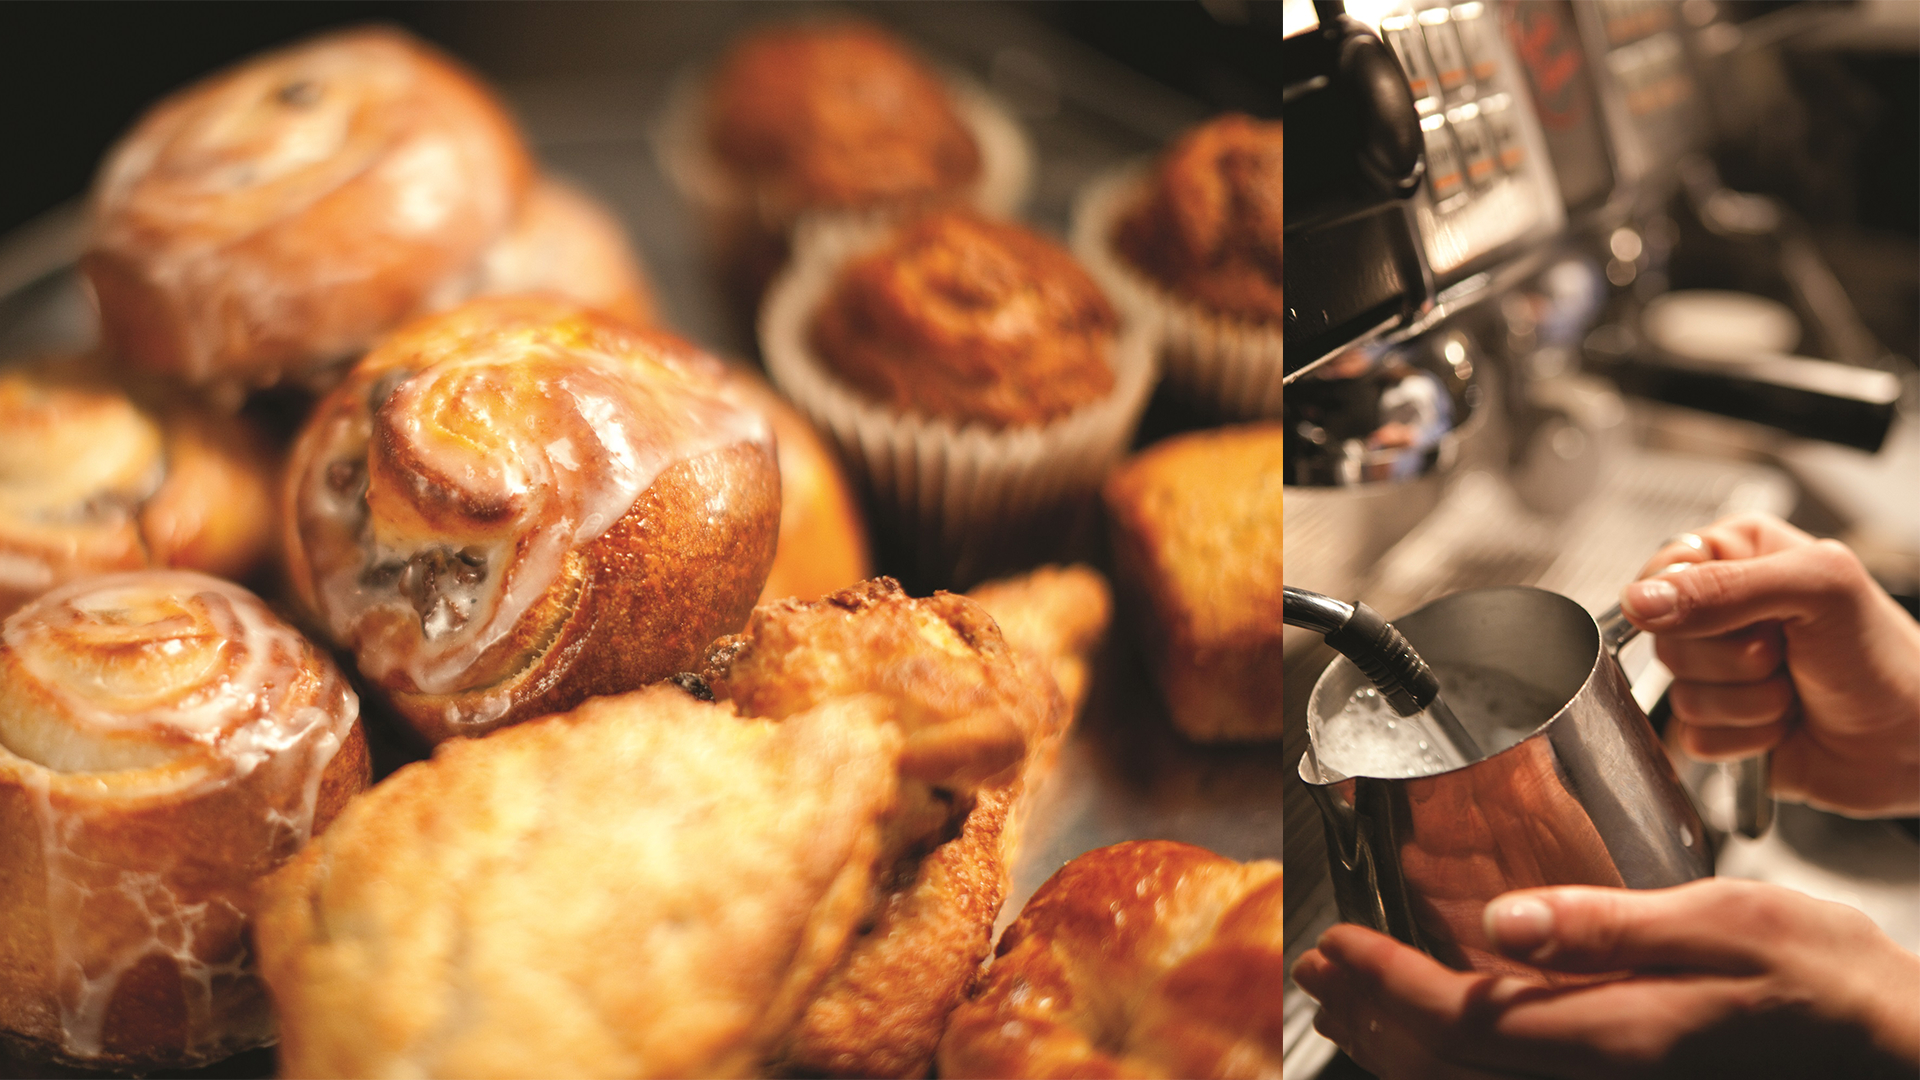 The Sebastian offers the best breakfast in Vail, including these delicious pastries and coffee.